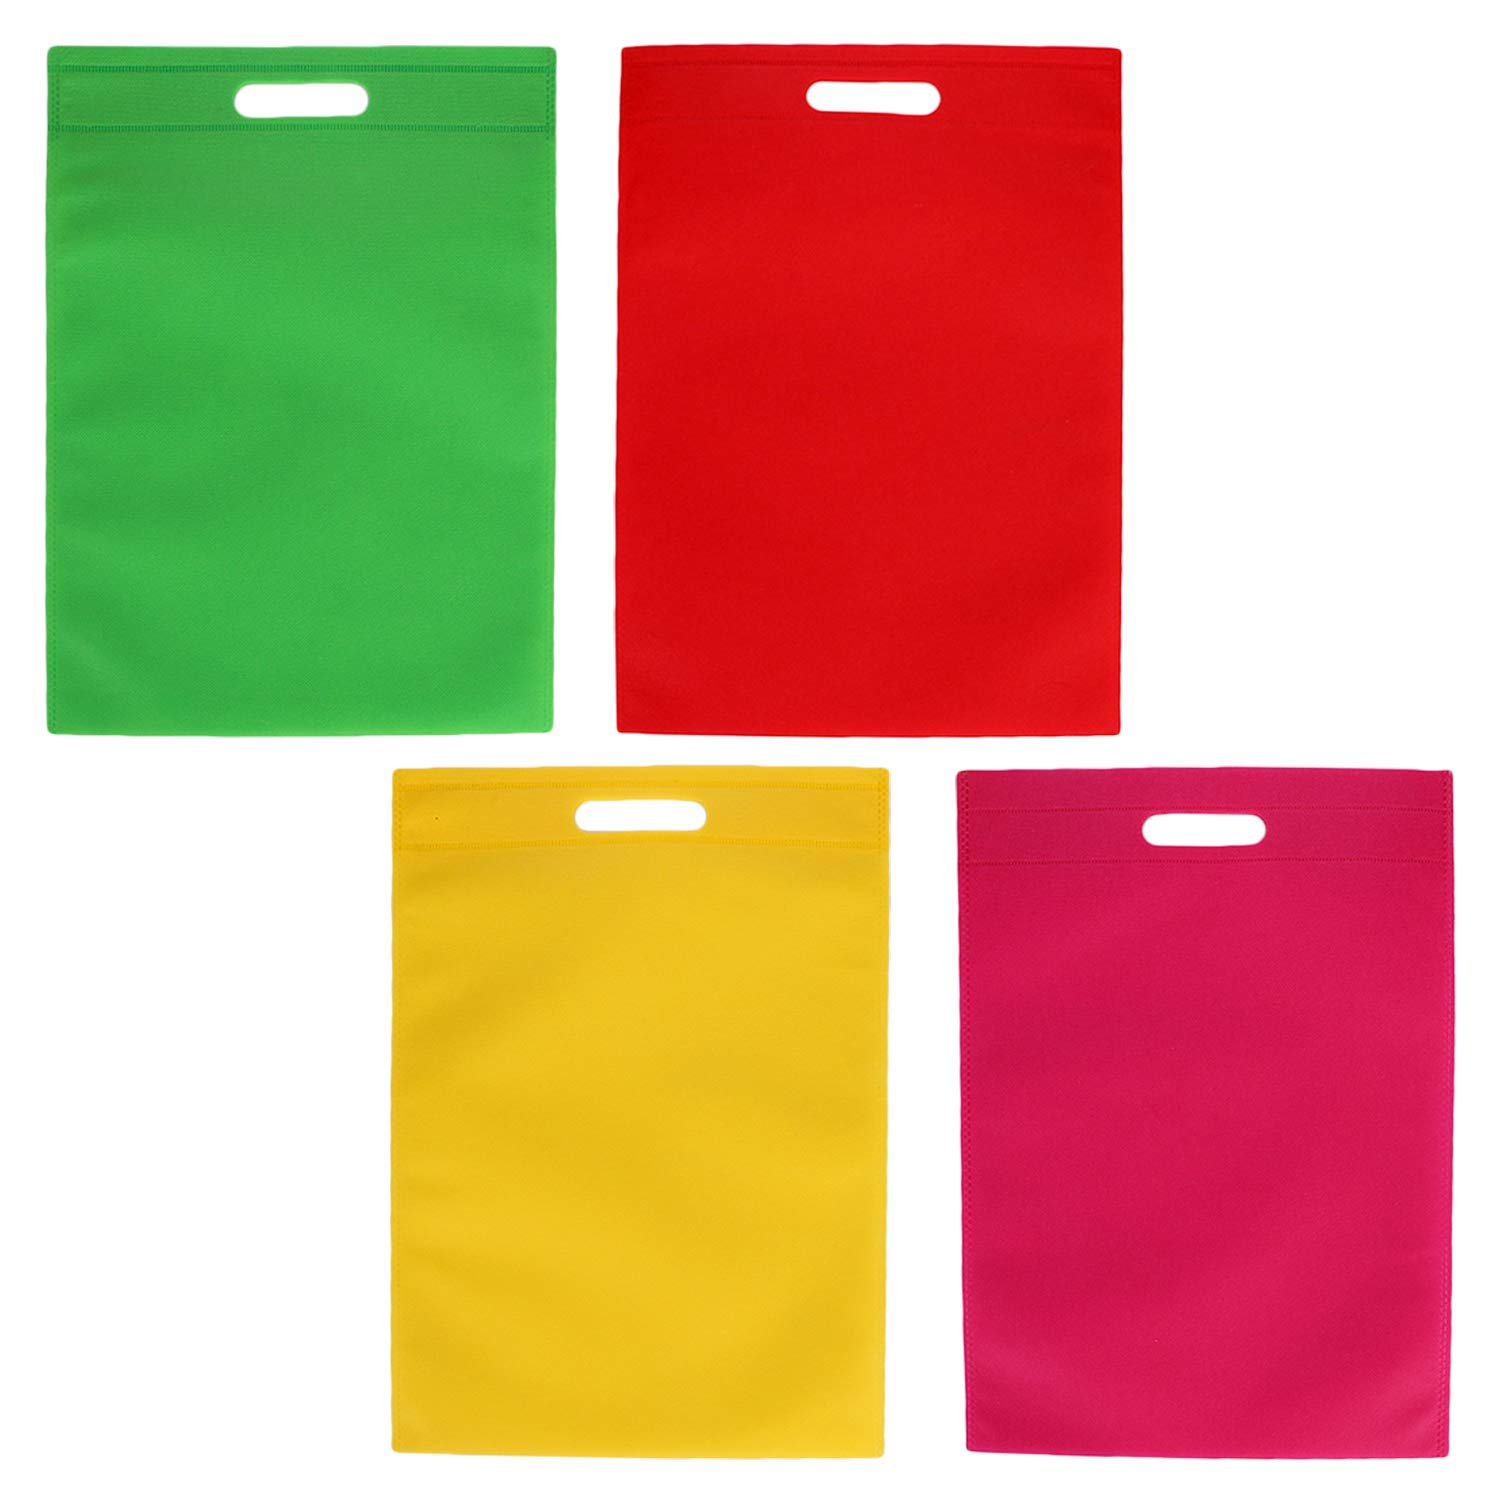 40PCS 300x250mm Assorted Colors Non-Woven Party Gift Tote Bags for Kids Adults Candy Book Stationery Toys Migavan